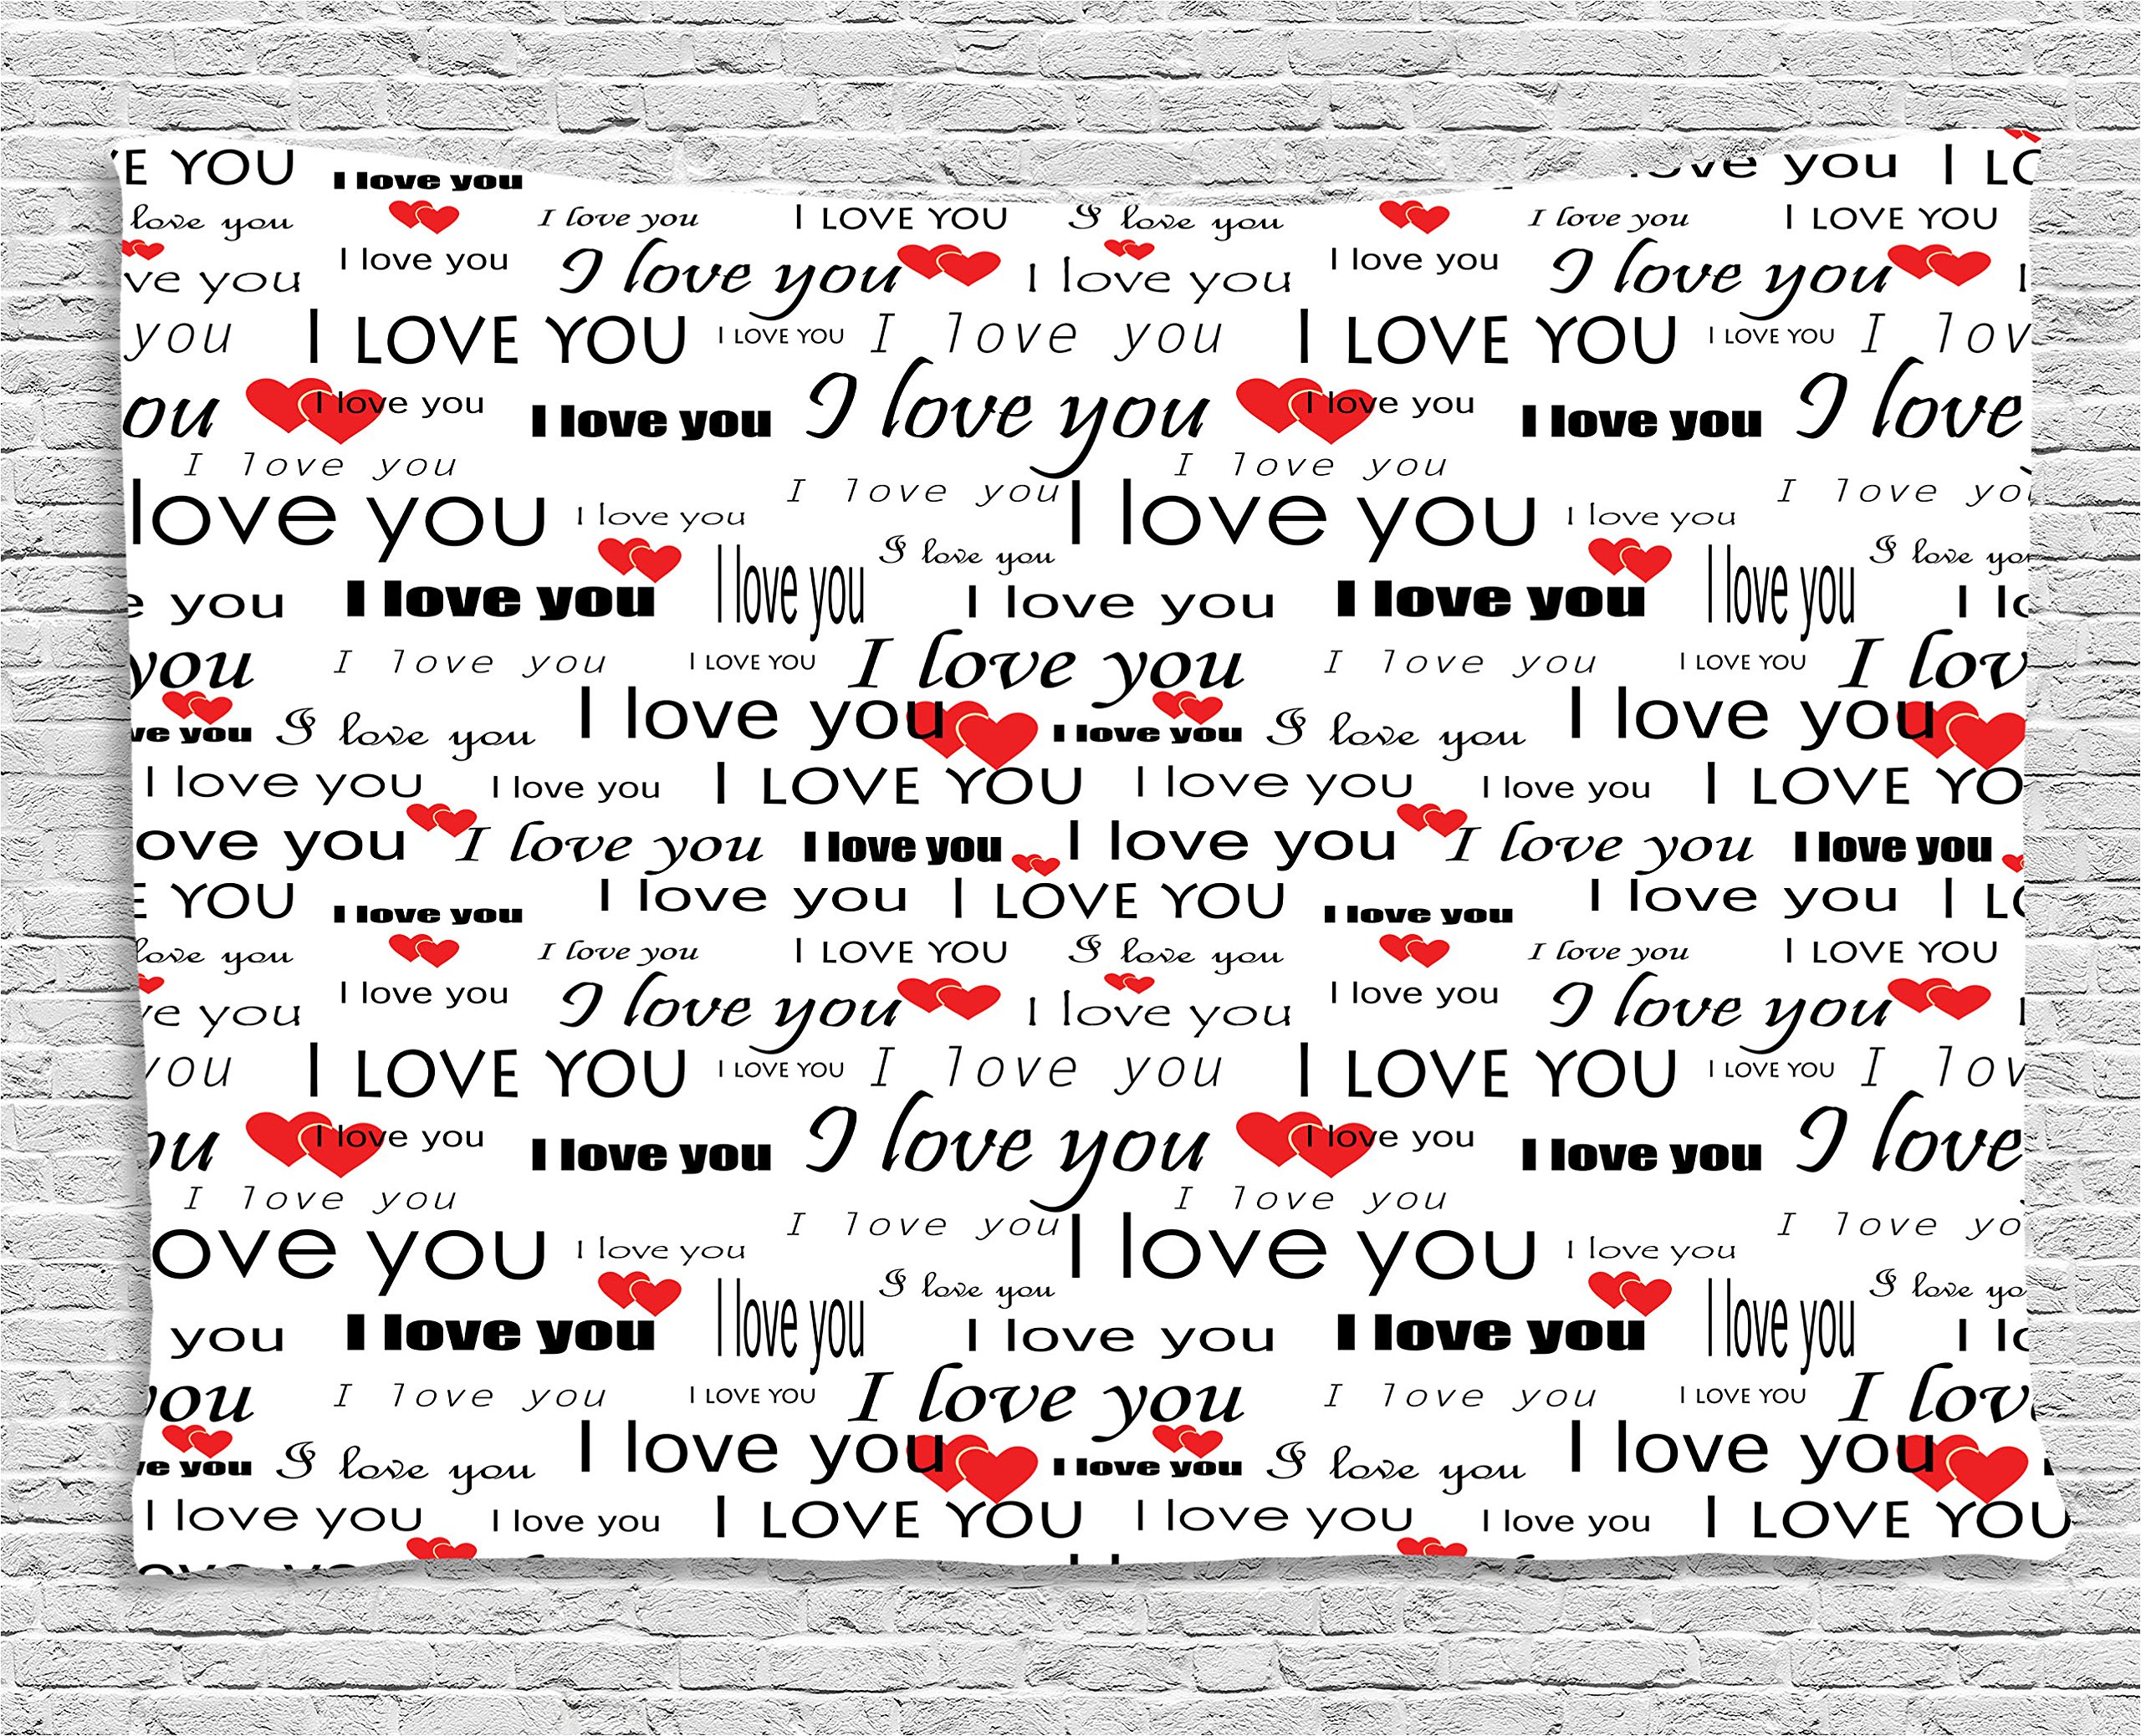 Ambesonne Romantic Tapestry, I Love You Quote with Hearts Romance Couple Valentine Plain Backdrop, Wall Hanging for Bedroom Living Room Dorm, 80 W X 60 L Inches, Vermilion Black White